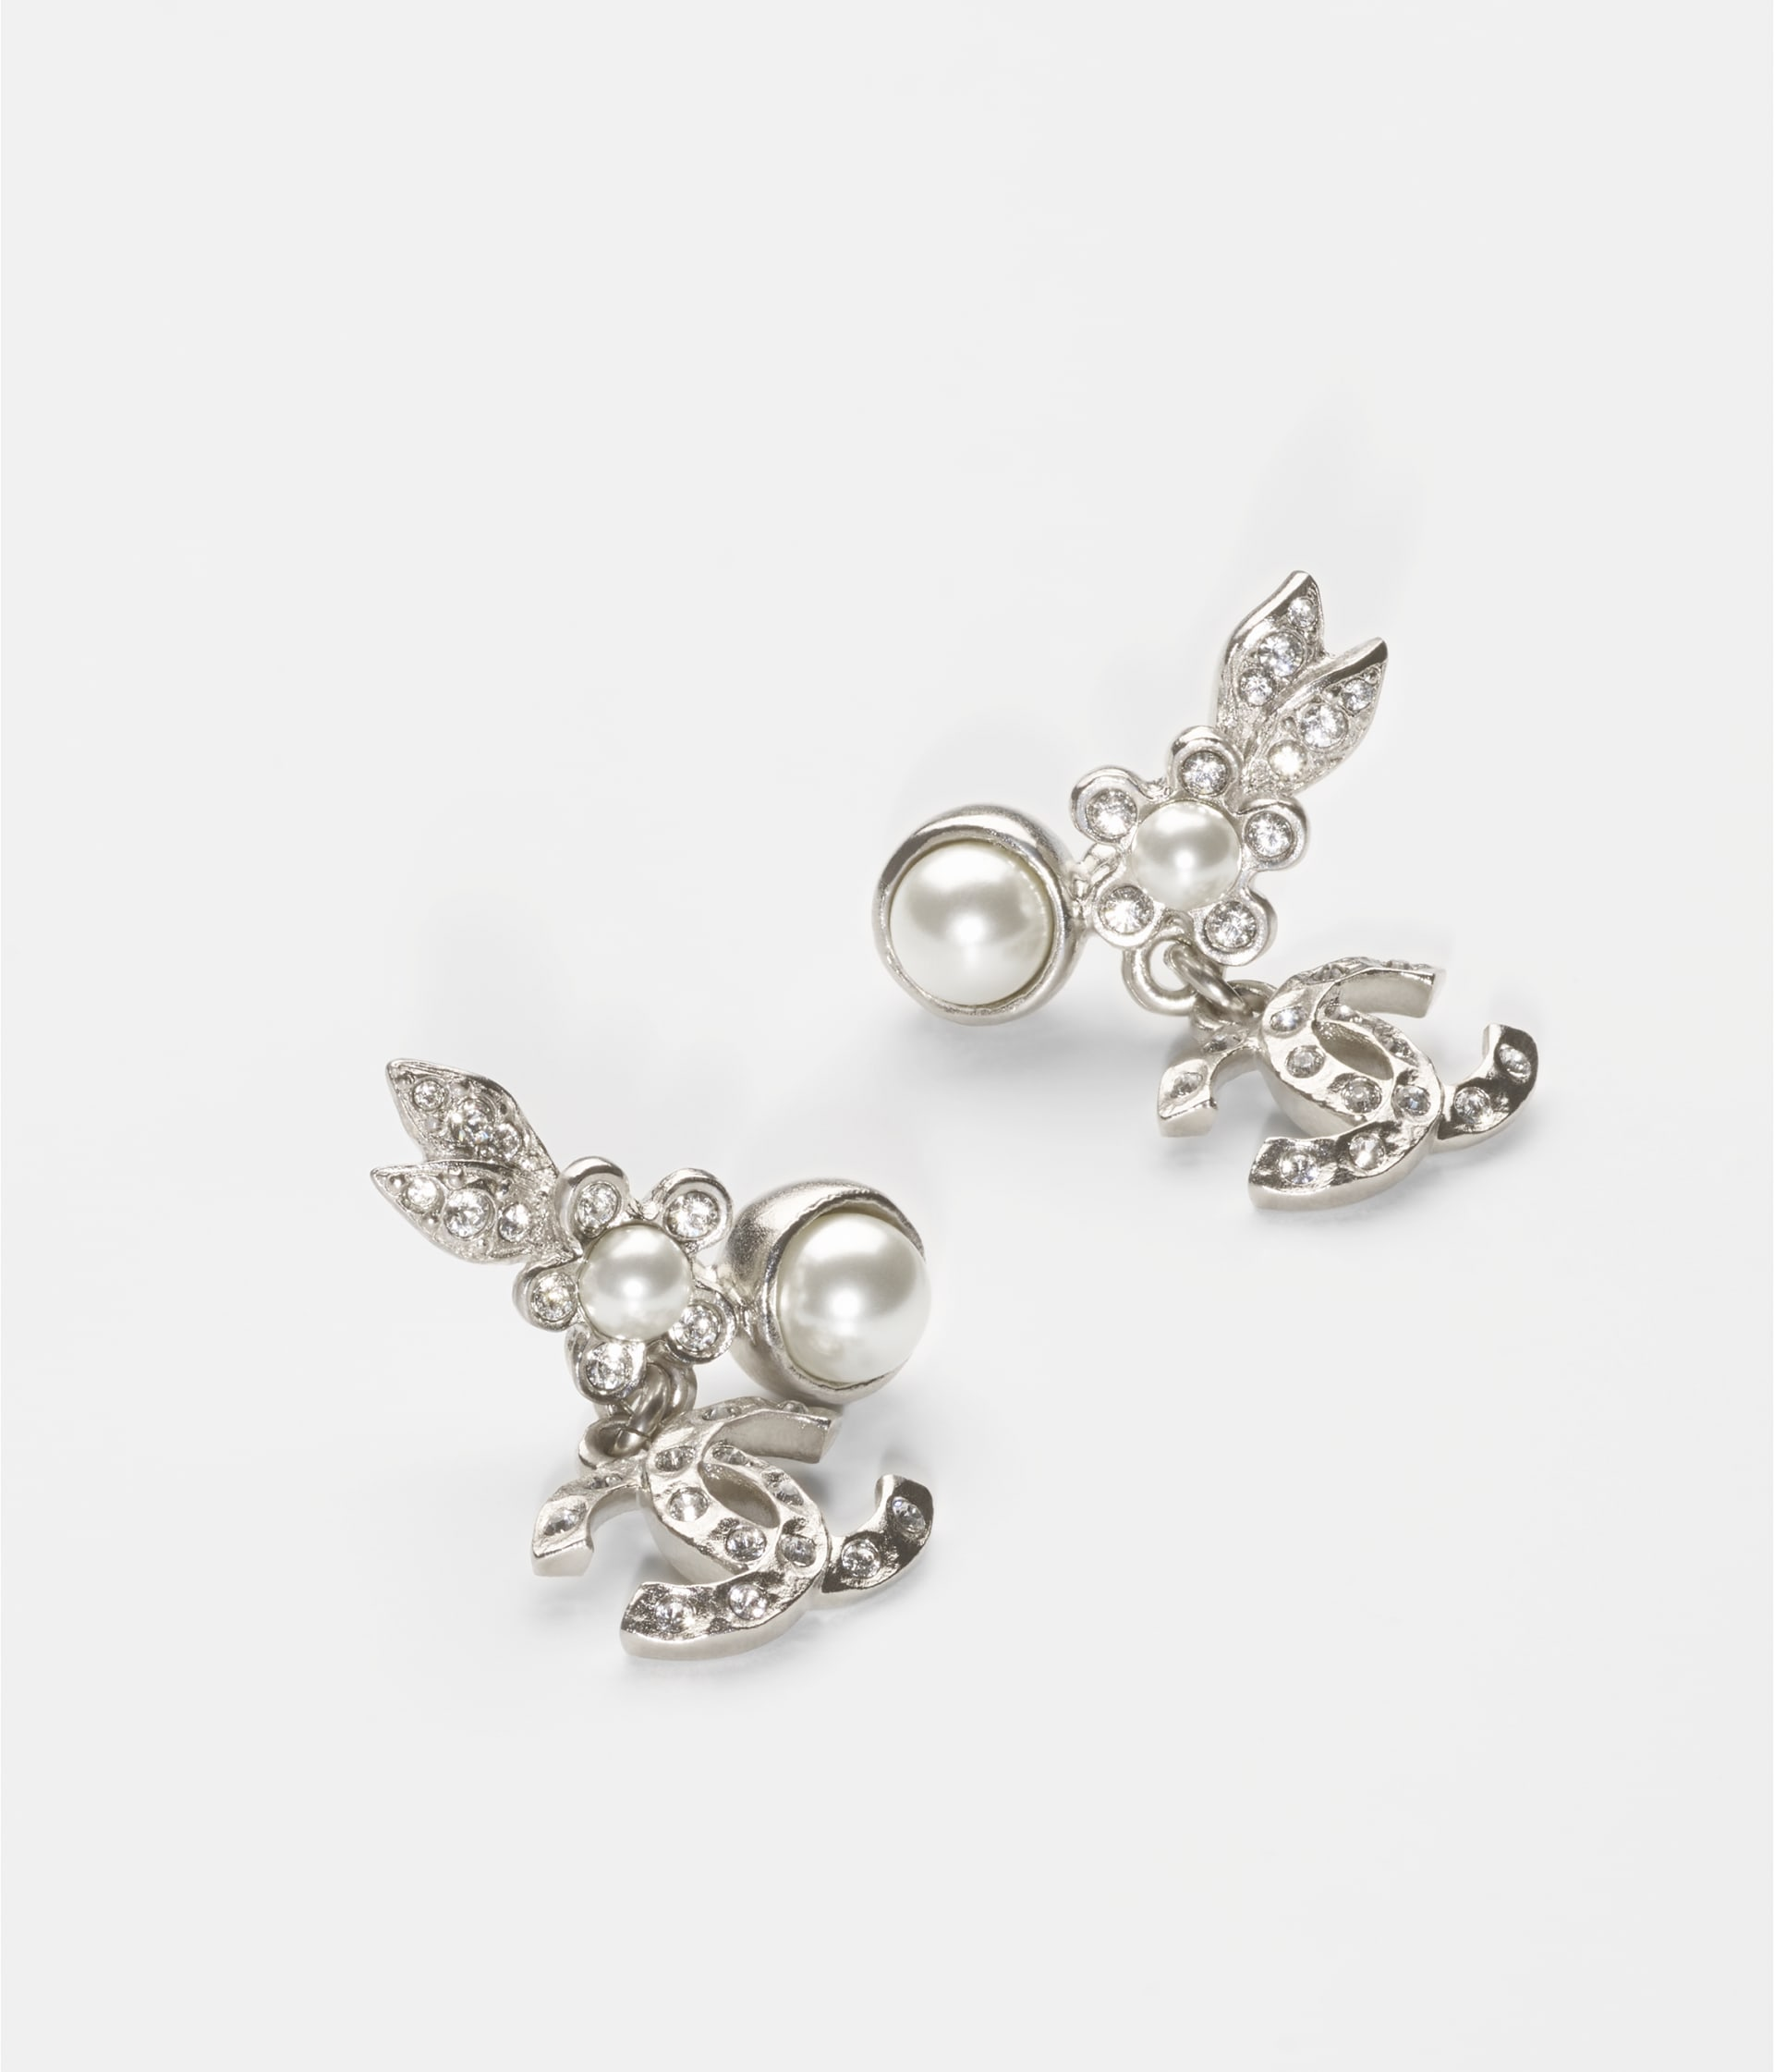 image 2 - Earrings - Metal, Glass Pearls & Strass - Silver, Pearly White & Crystal